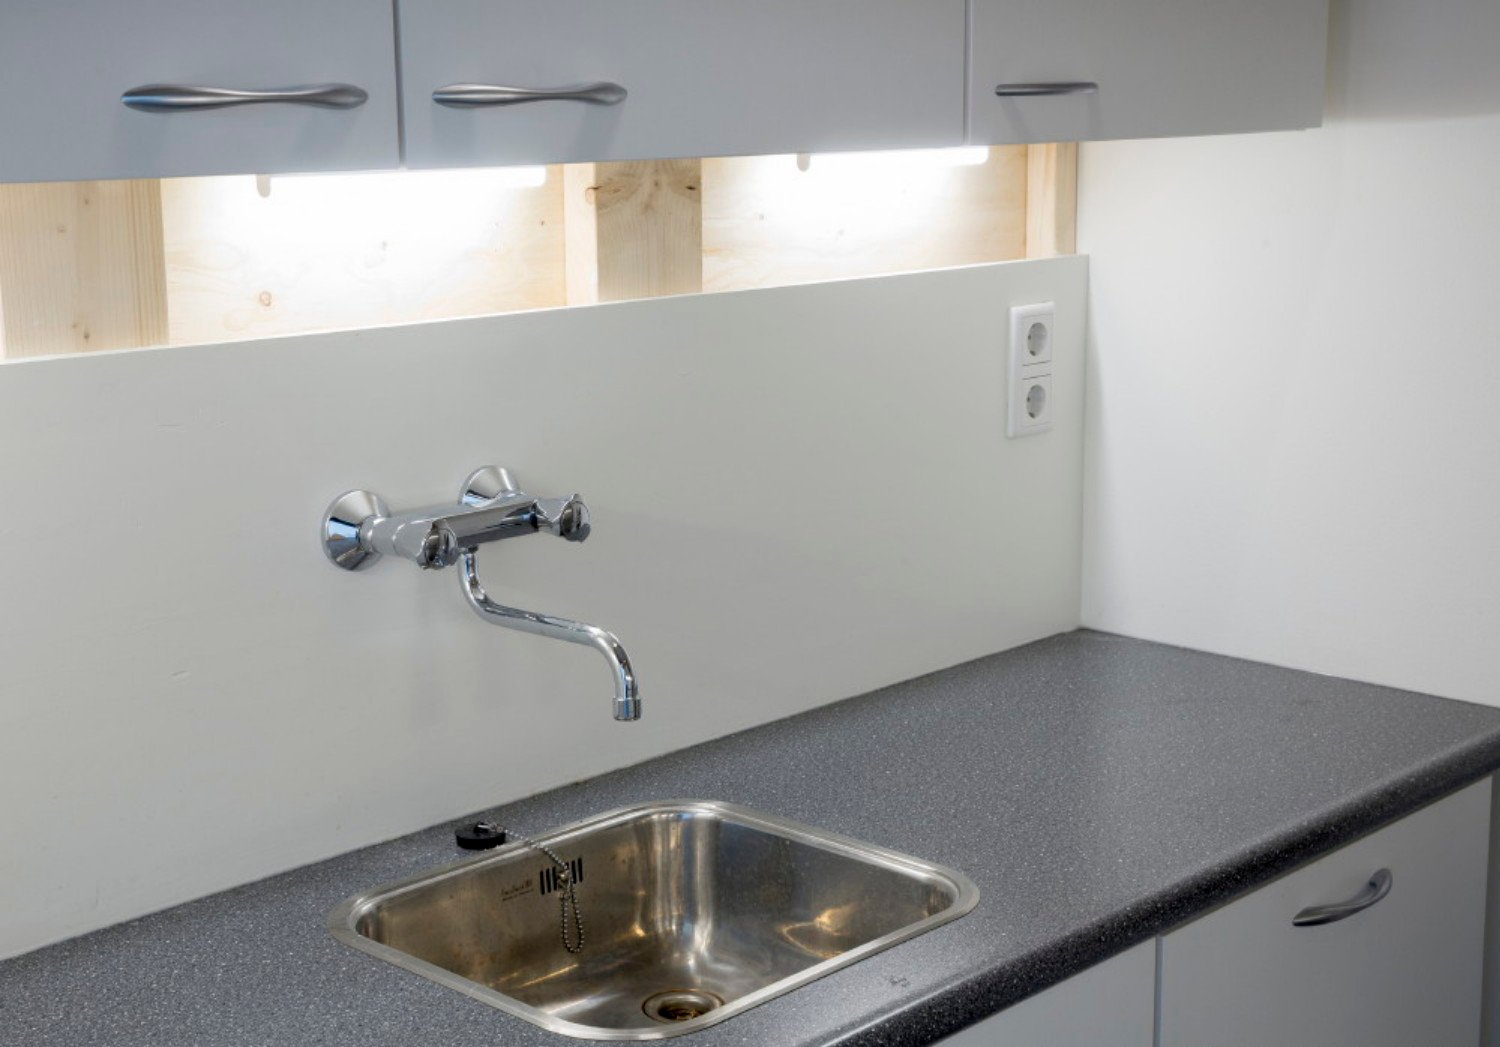 outlets vertically and high above kitchen top, a wall faucet Studio Csany